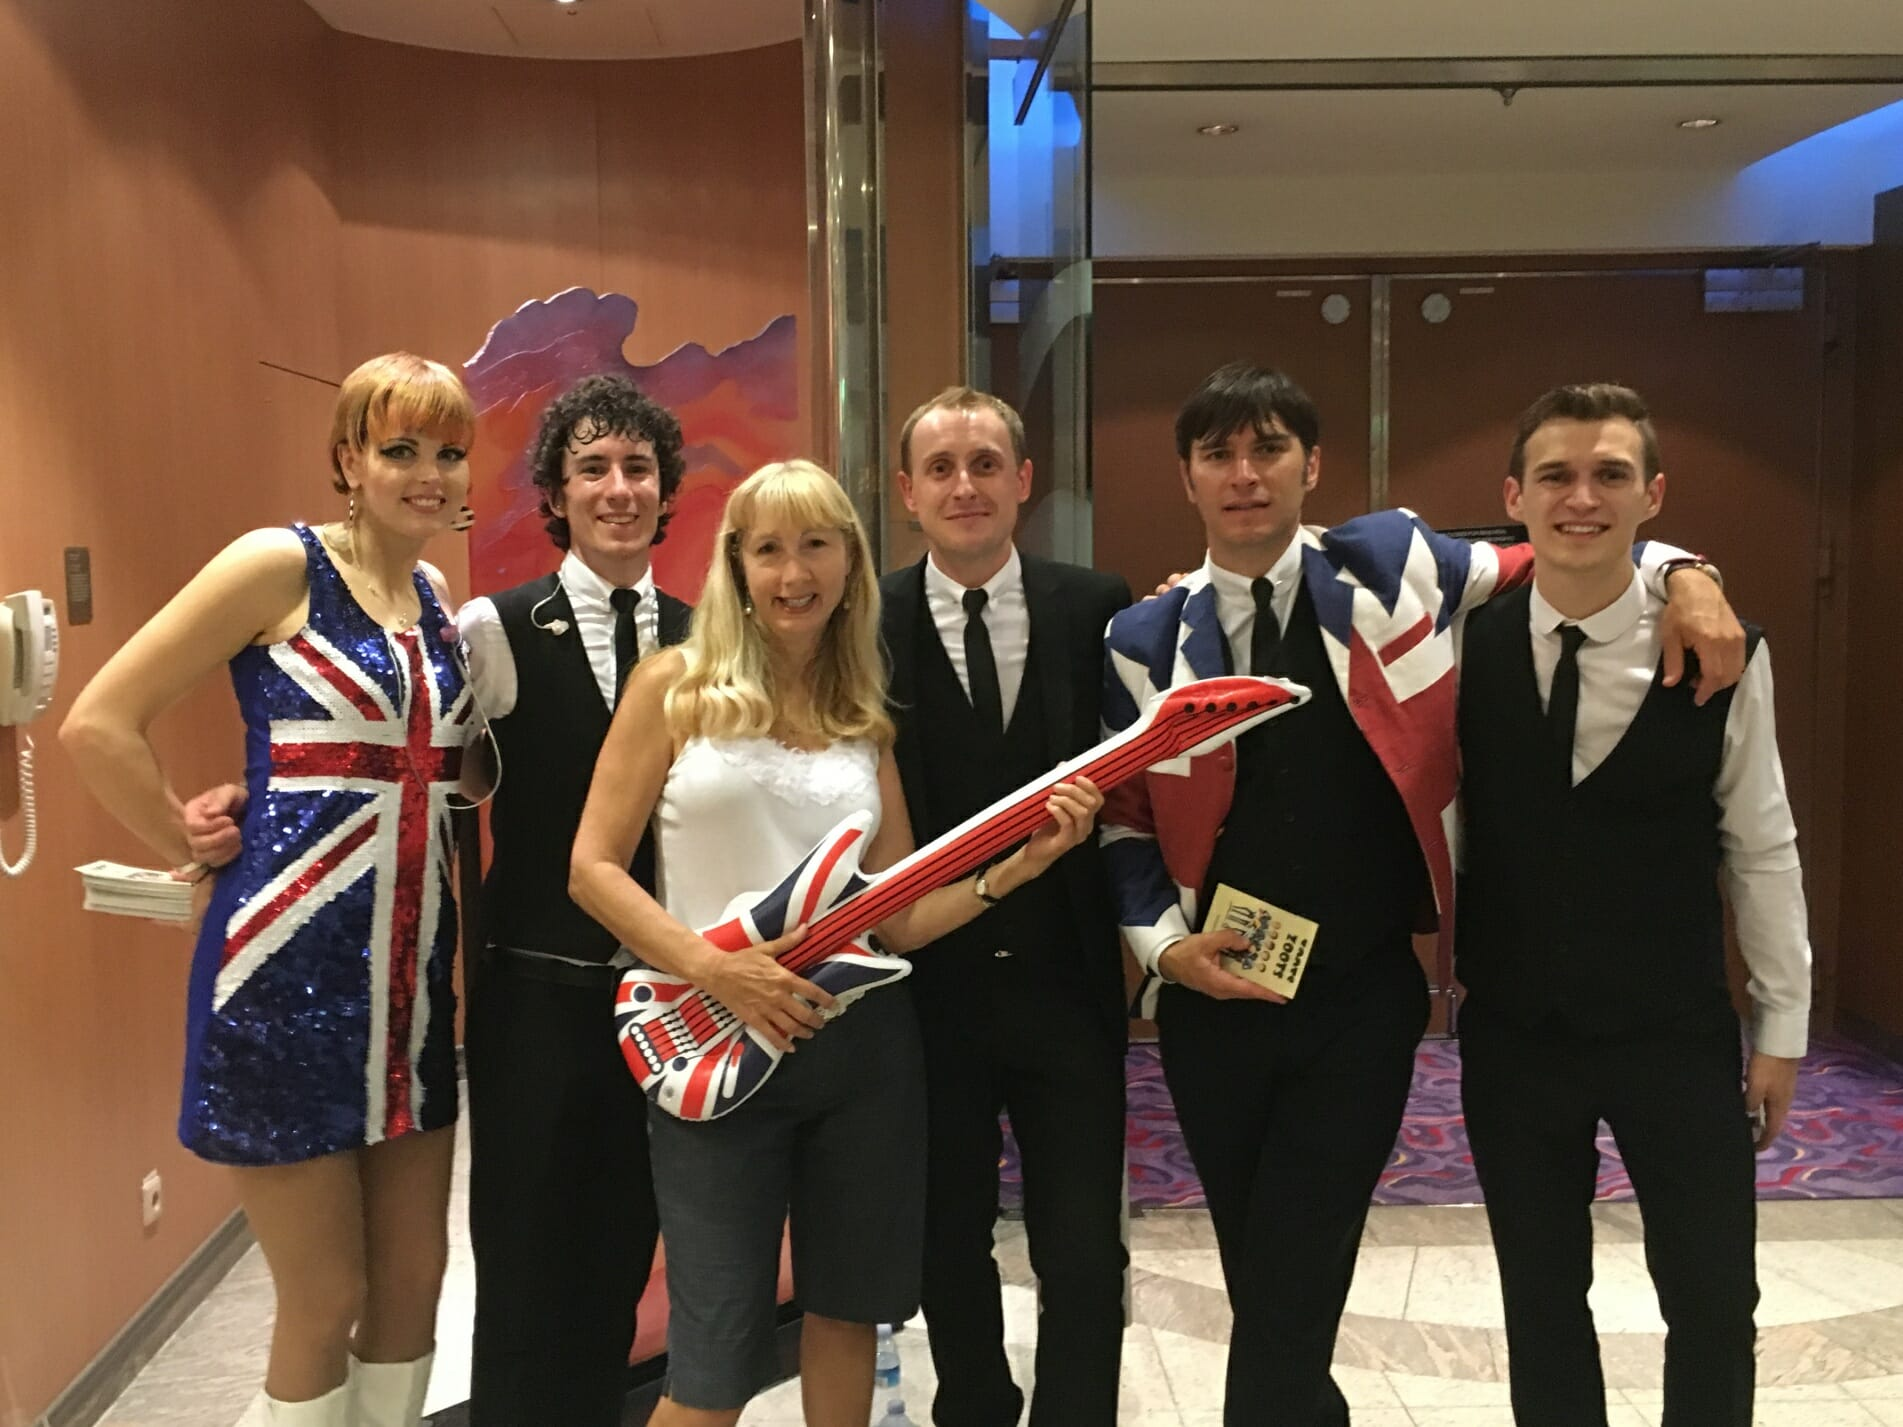 Brilliance of the Seas, Royal Carribean, The Zoots band, Band in Wiltshire, Wiltshire Band, 60s band, wedding band, sixites band, party band, band for hire, Zoots band, Awesome Band, Band in Wiltshire, Band in south west,